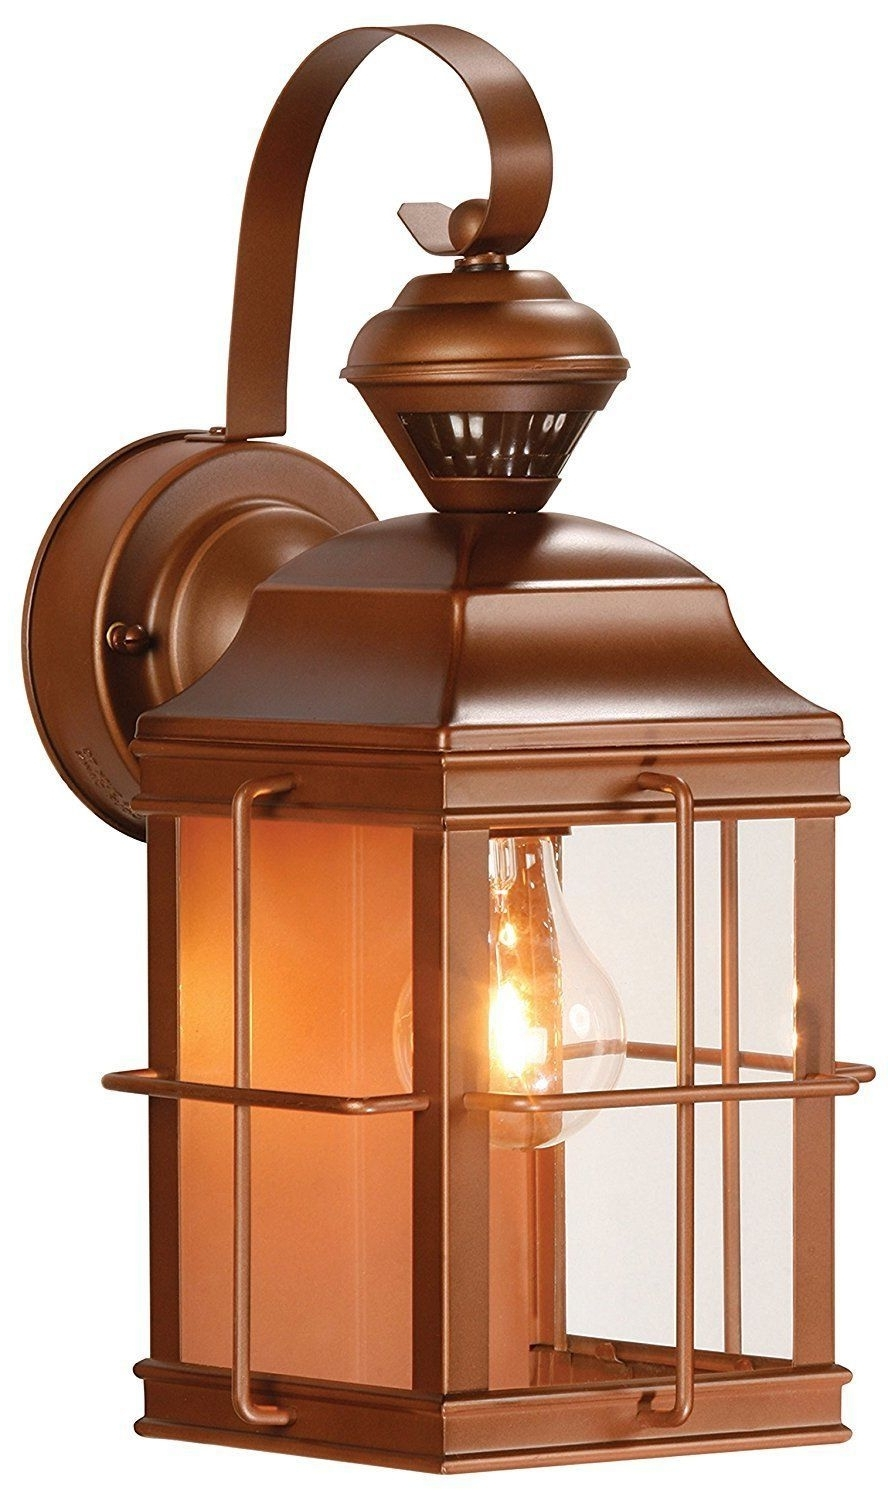 Porch Lantern Lamp Patio Lighting Bronze Wall Light Outdoor Weather With Regard To Most Popular Outdoor Weather Resistant Lanterns (Gallery 5 of 20)